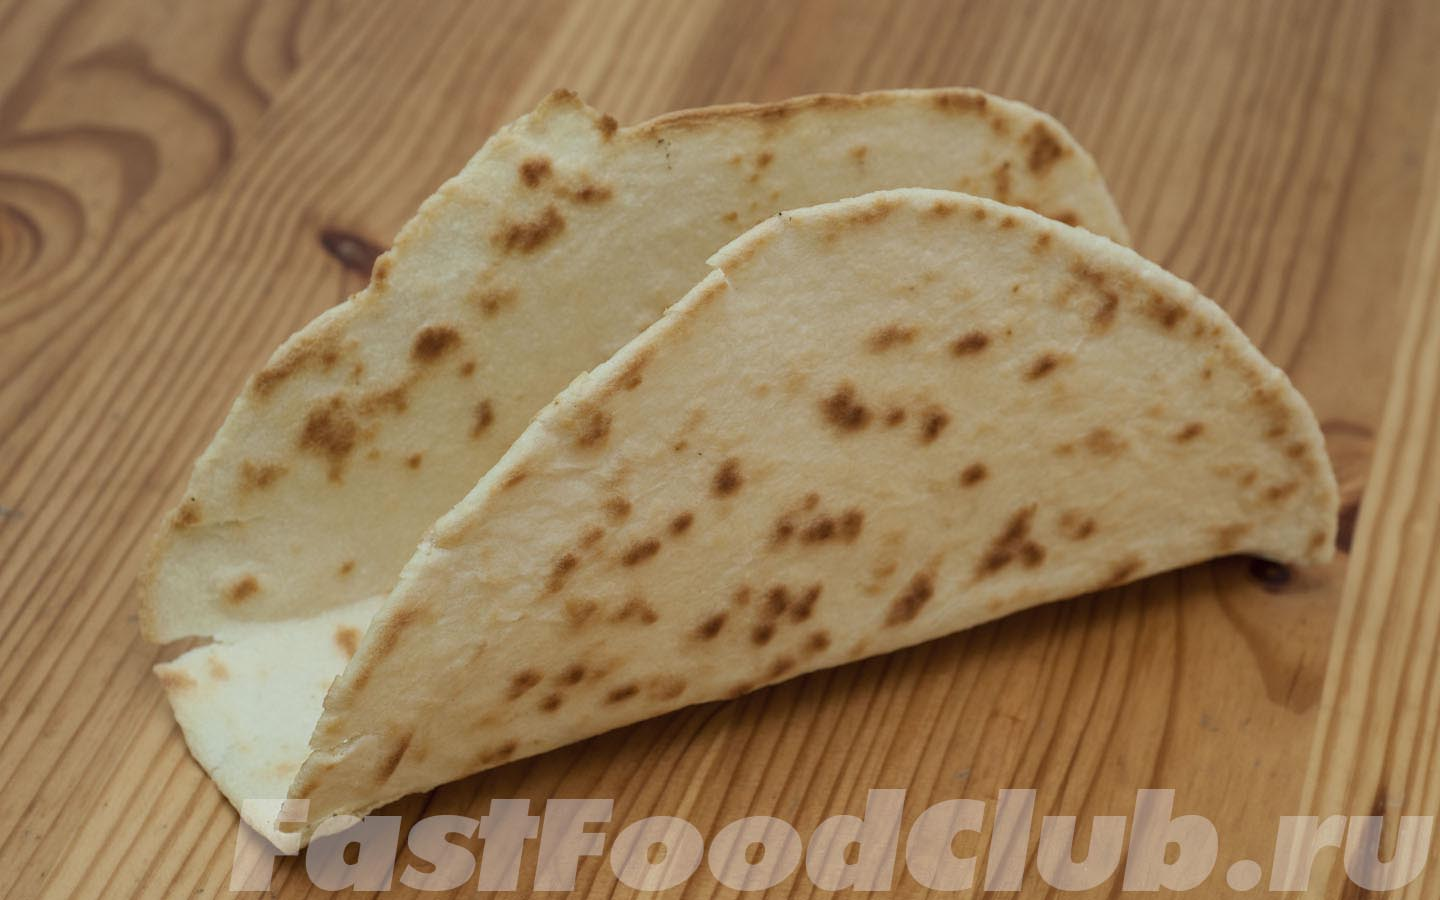 TORTILLA AND TACO SHELLS